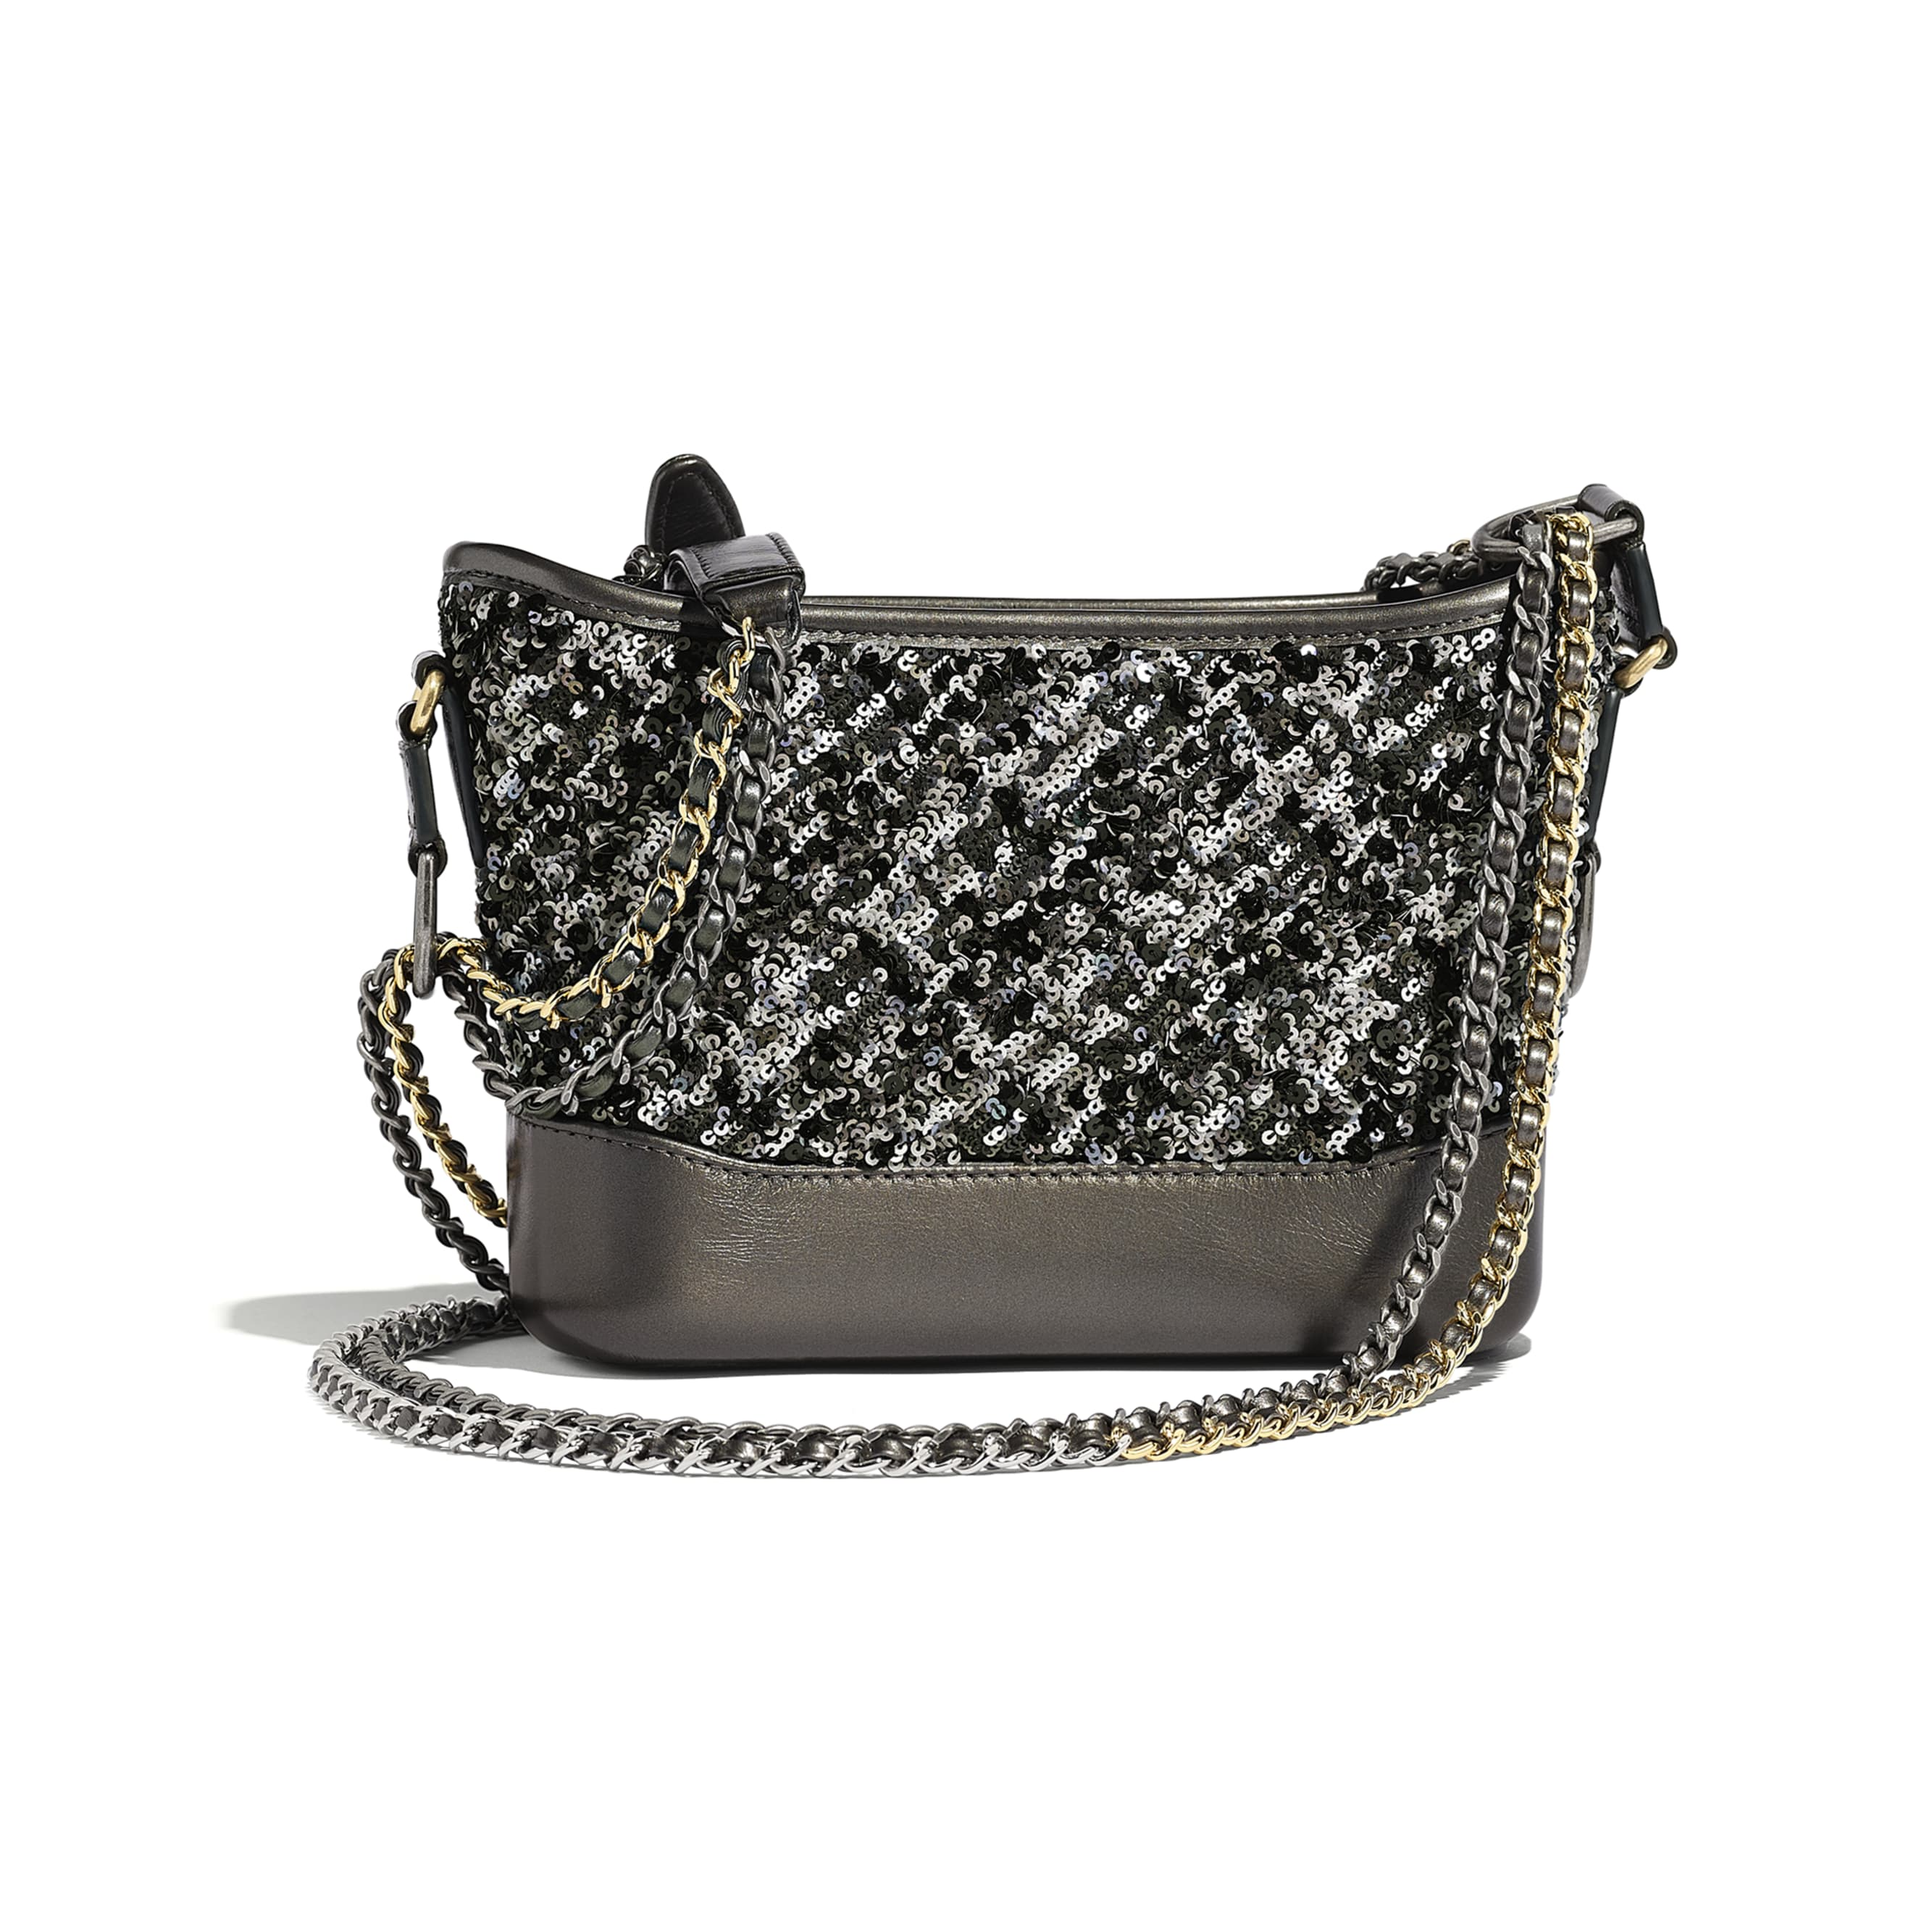 CHANEL'S GABRIELLE Small Hobo Bag - Black - Sequins, Calfksin, Silver-Tone & Gold-Tone Metal - Alternative view - see standard sized version